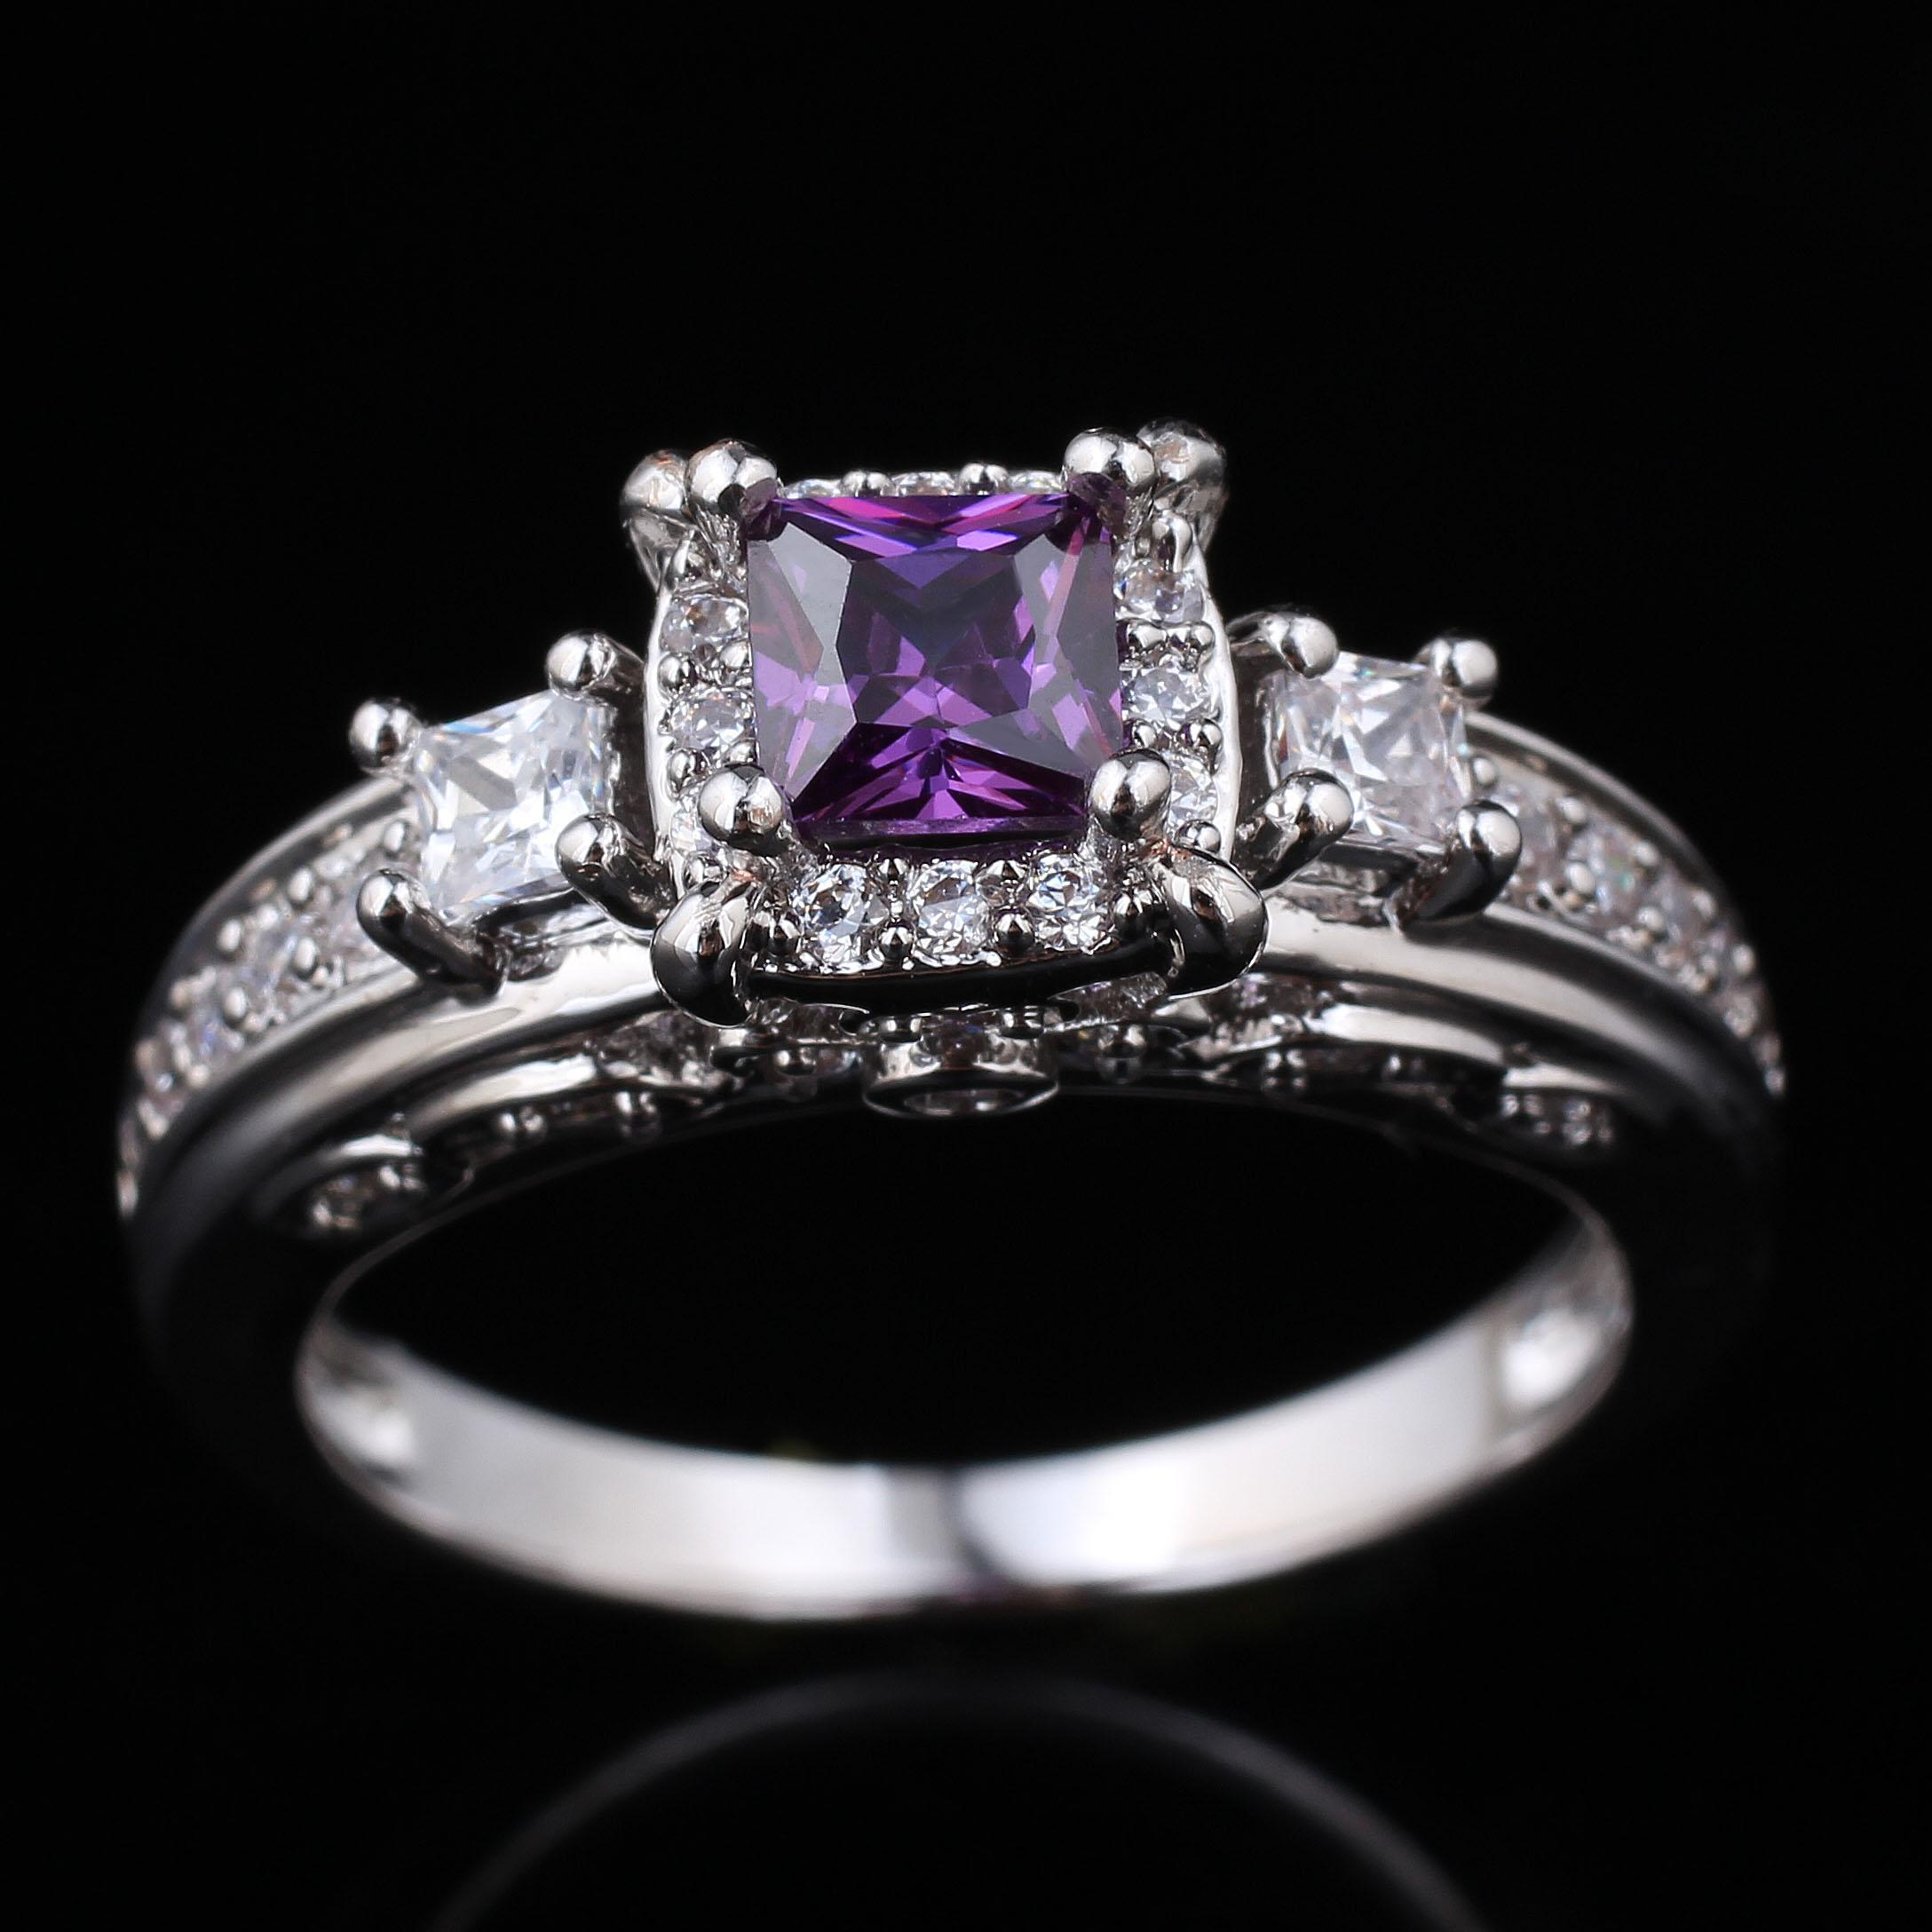 stone wedding diamonds engagement large diamond shining rings recent work hatton london garden purple